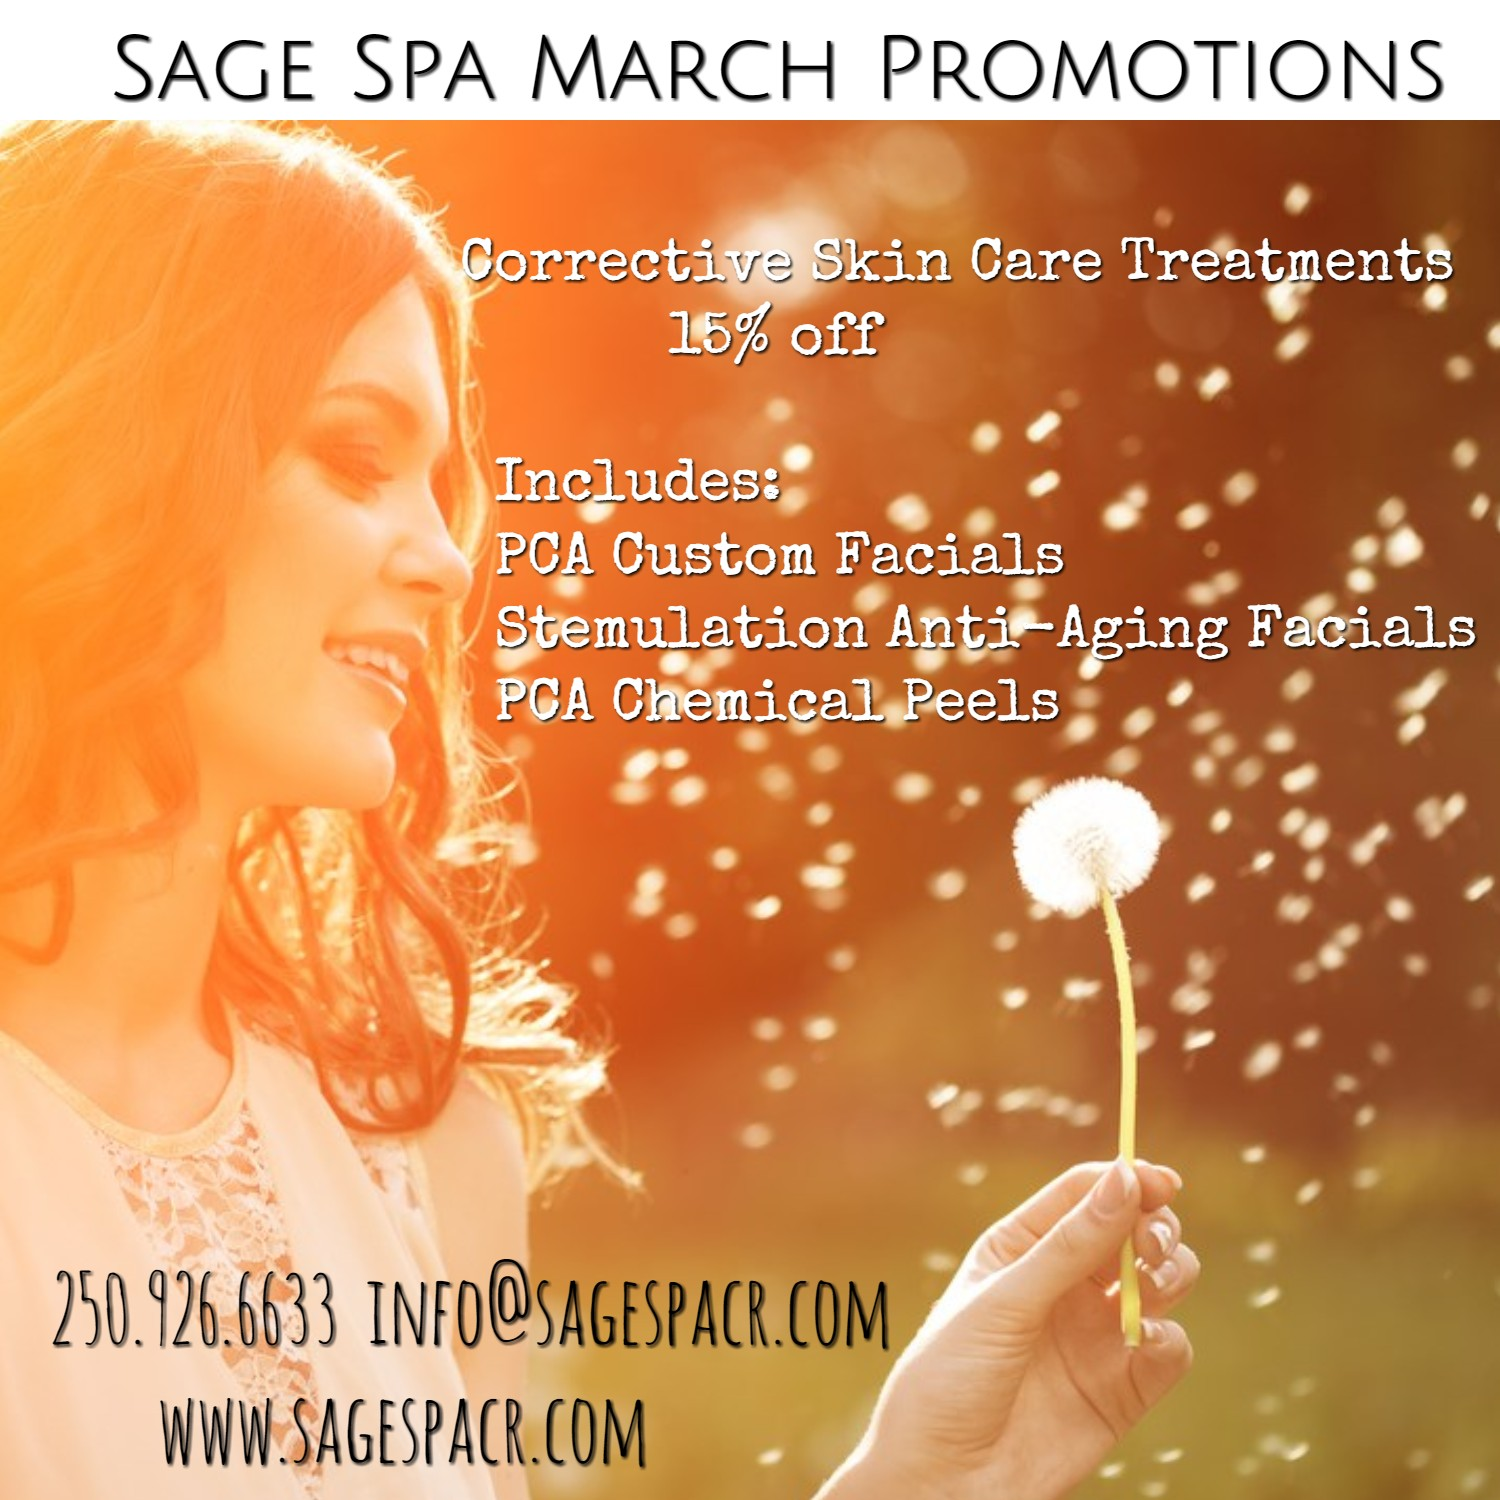 March Corrective Skin Care Facial Promotion Sage Spa Day Spa